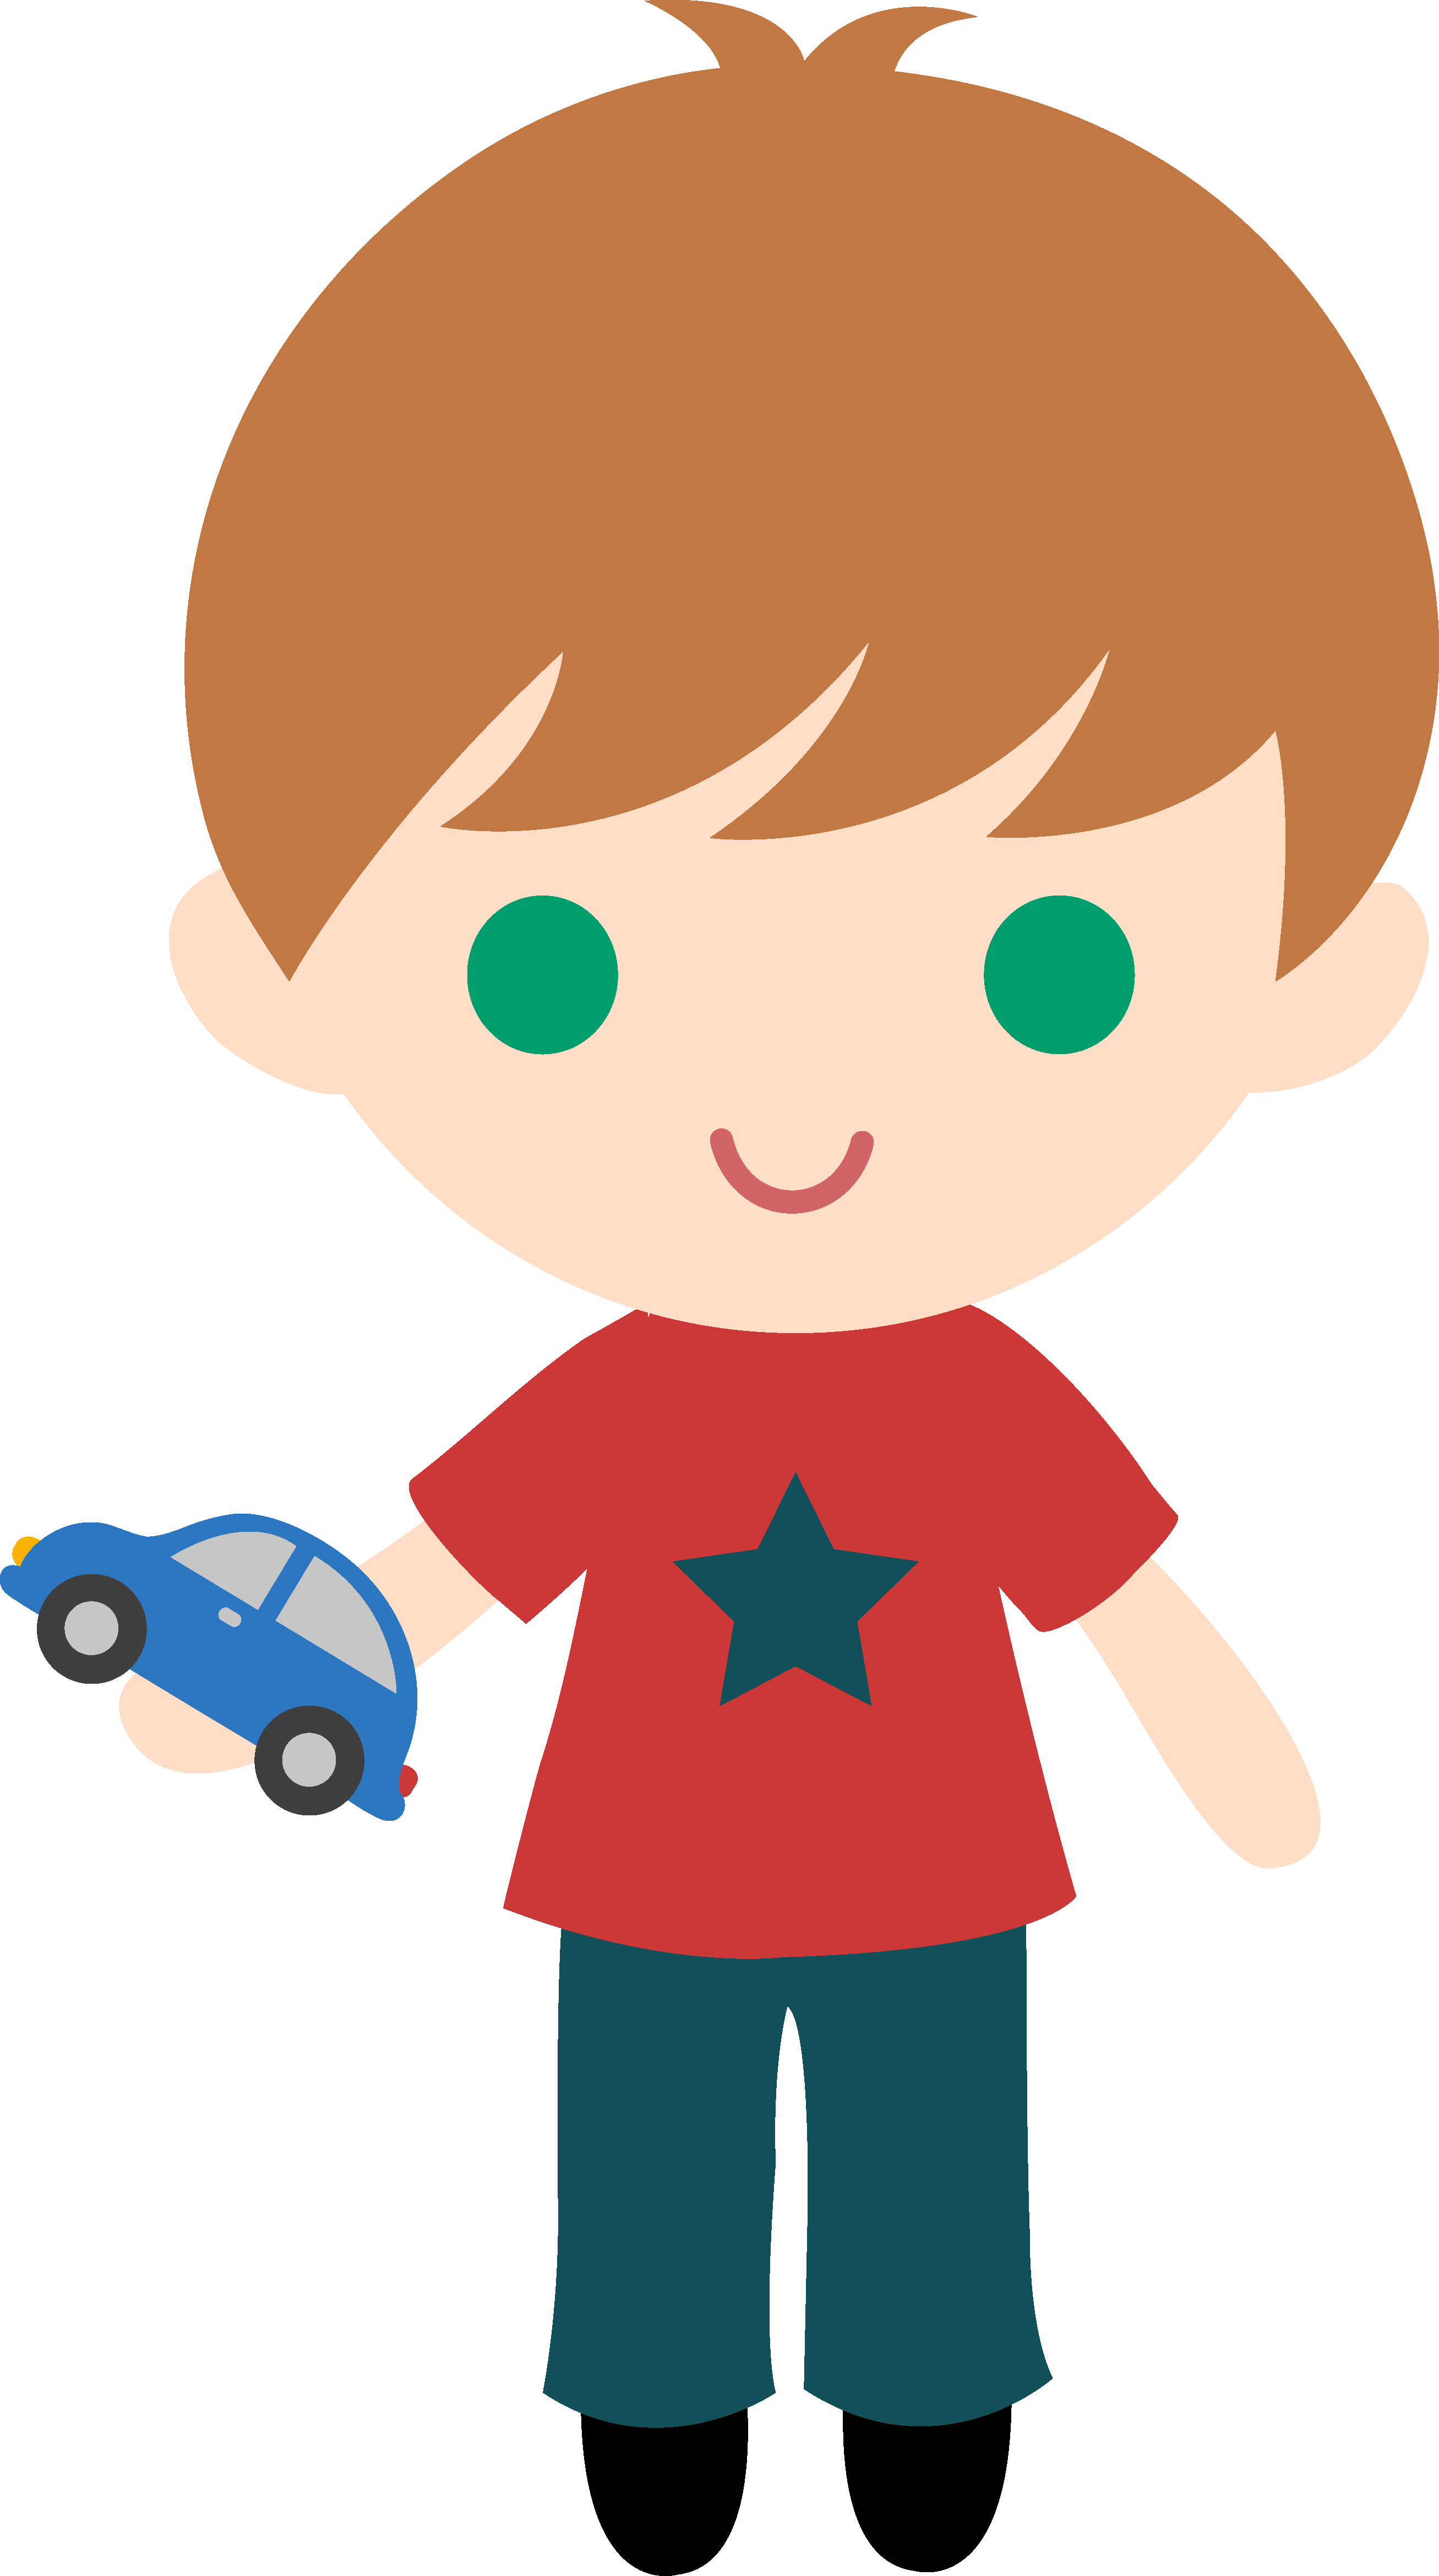 Boy clipart #19, Download drawings